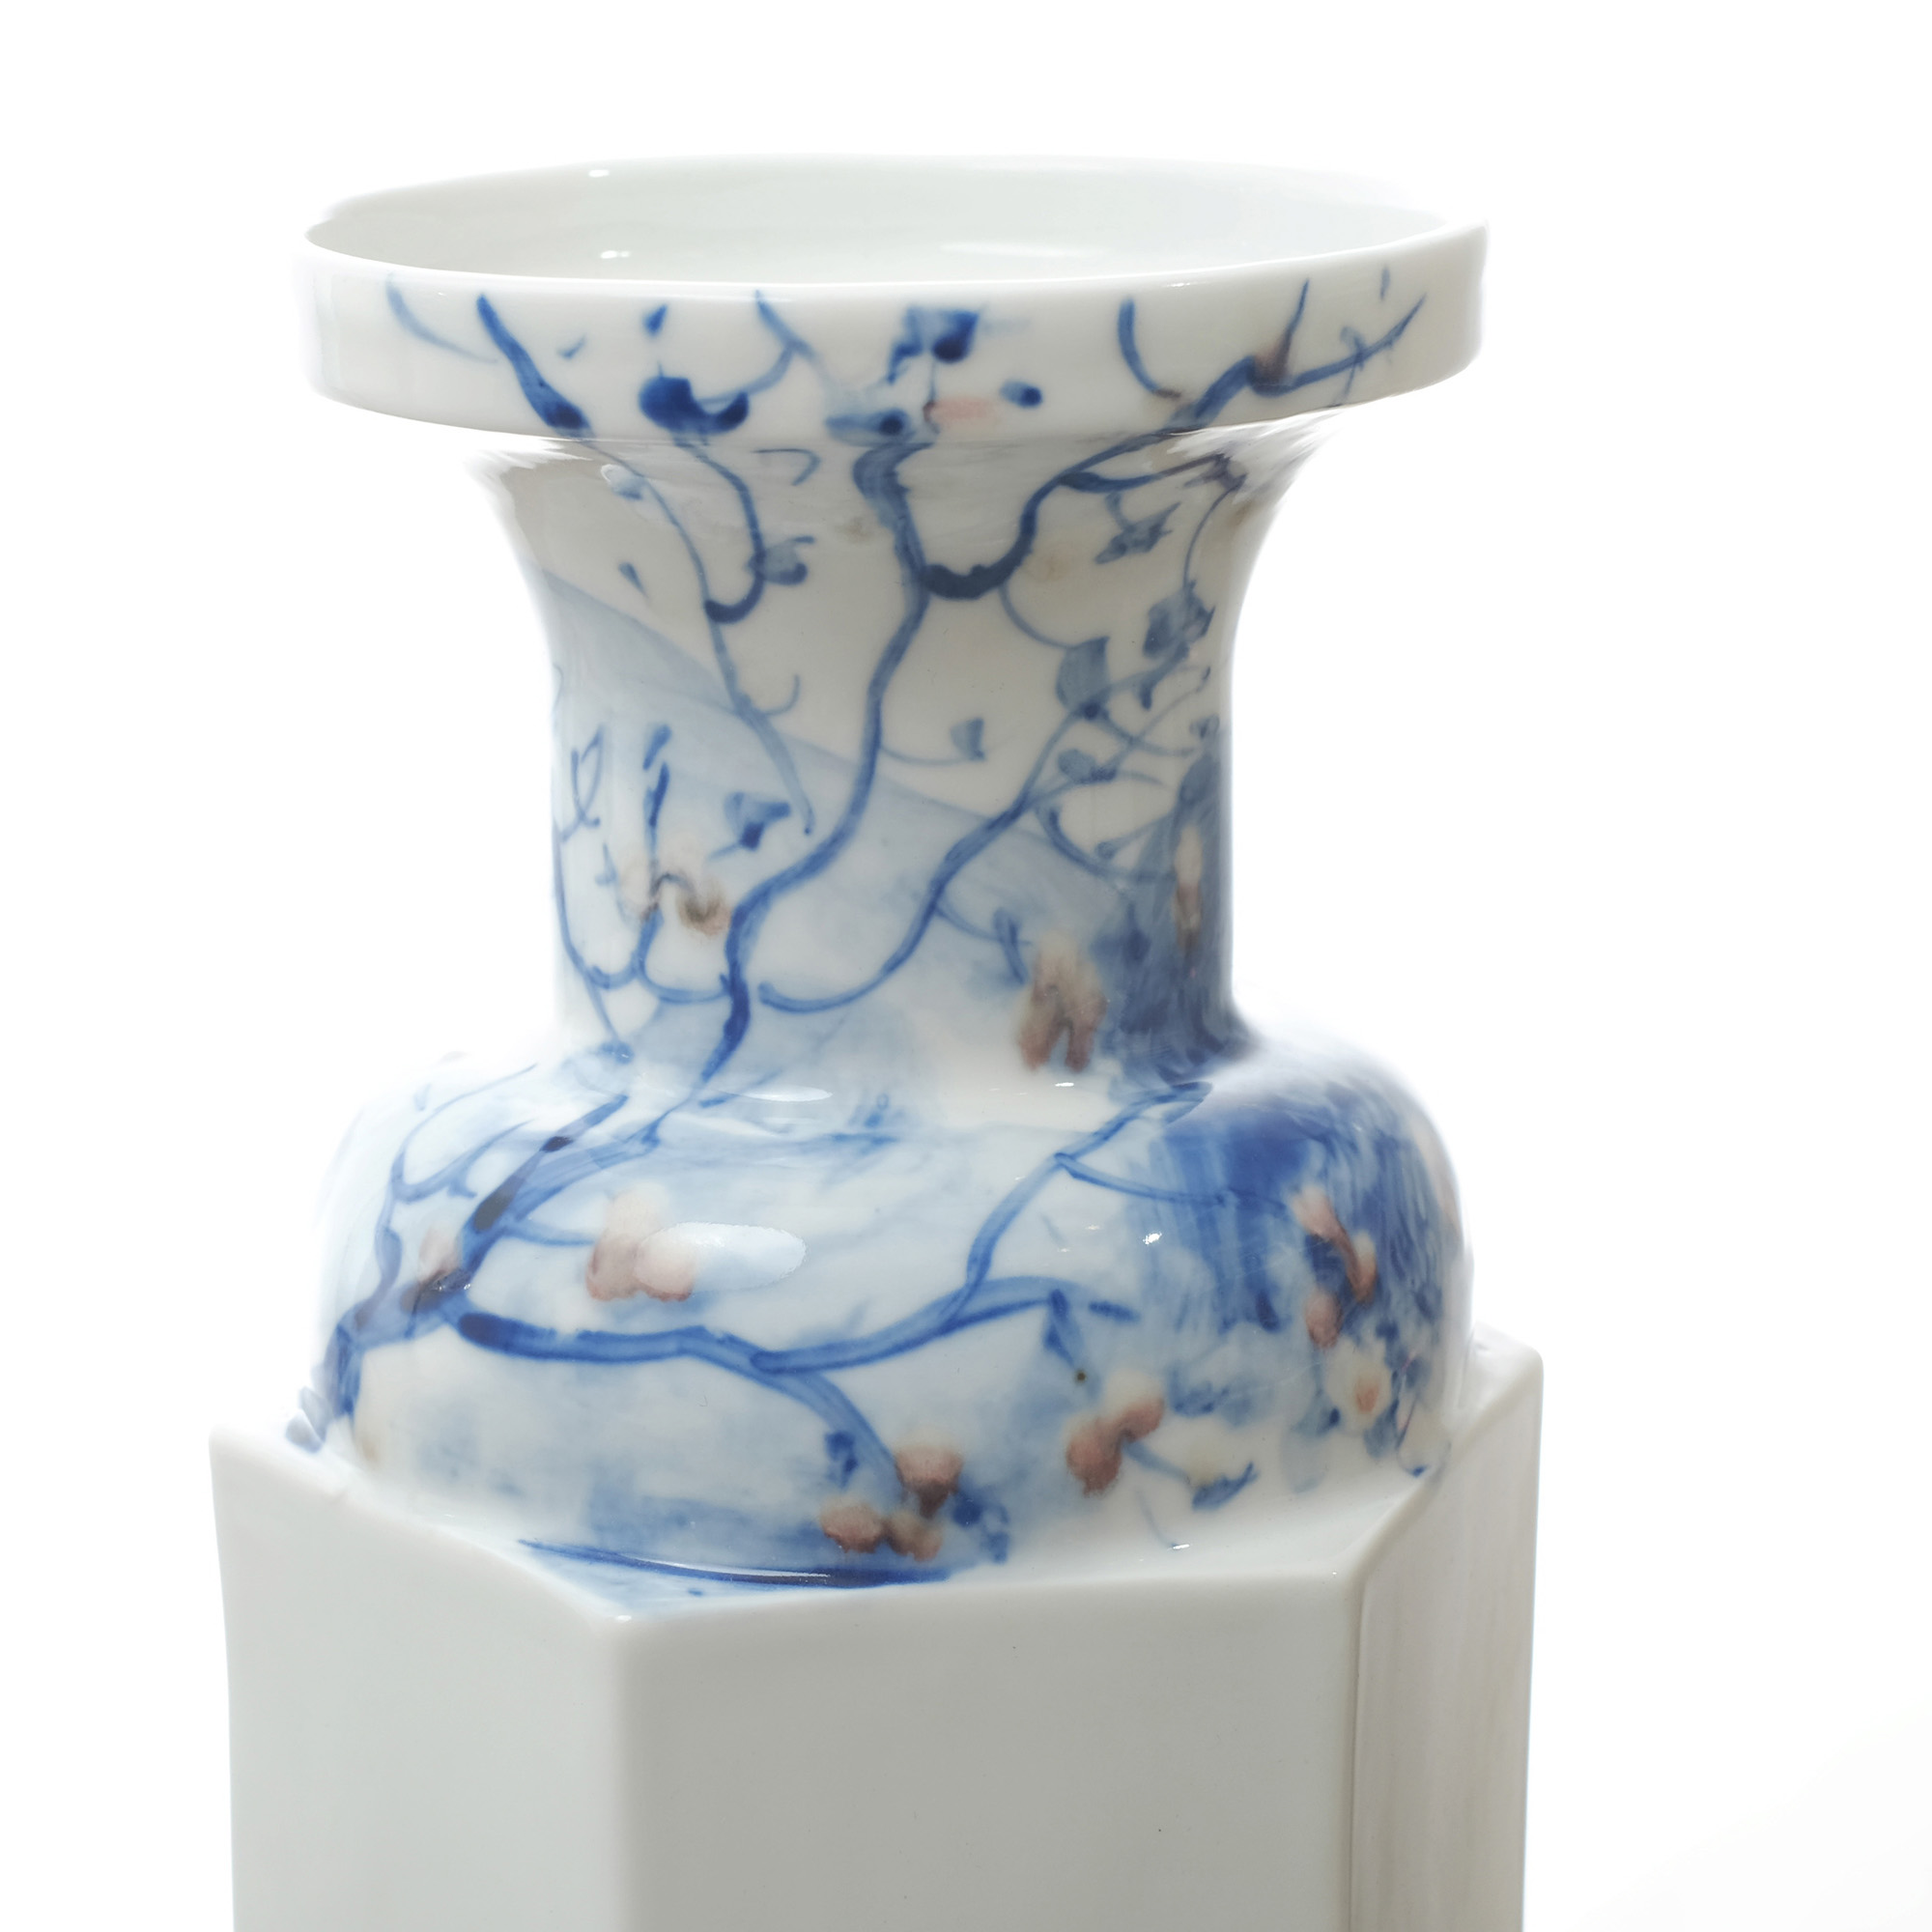 4_Rule of Thirds Vase Huang Fei.jpg